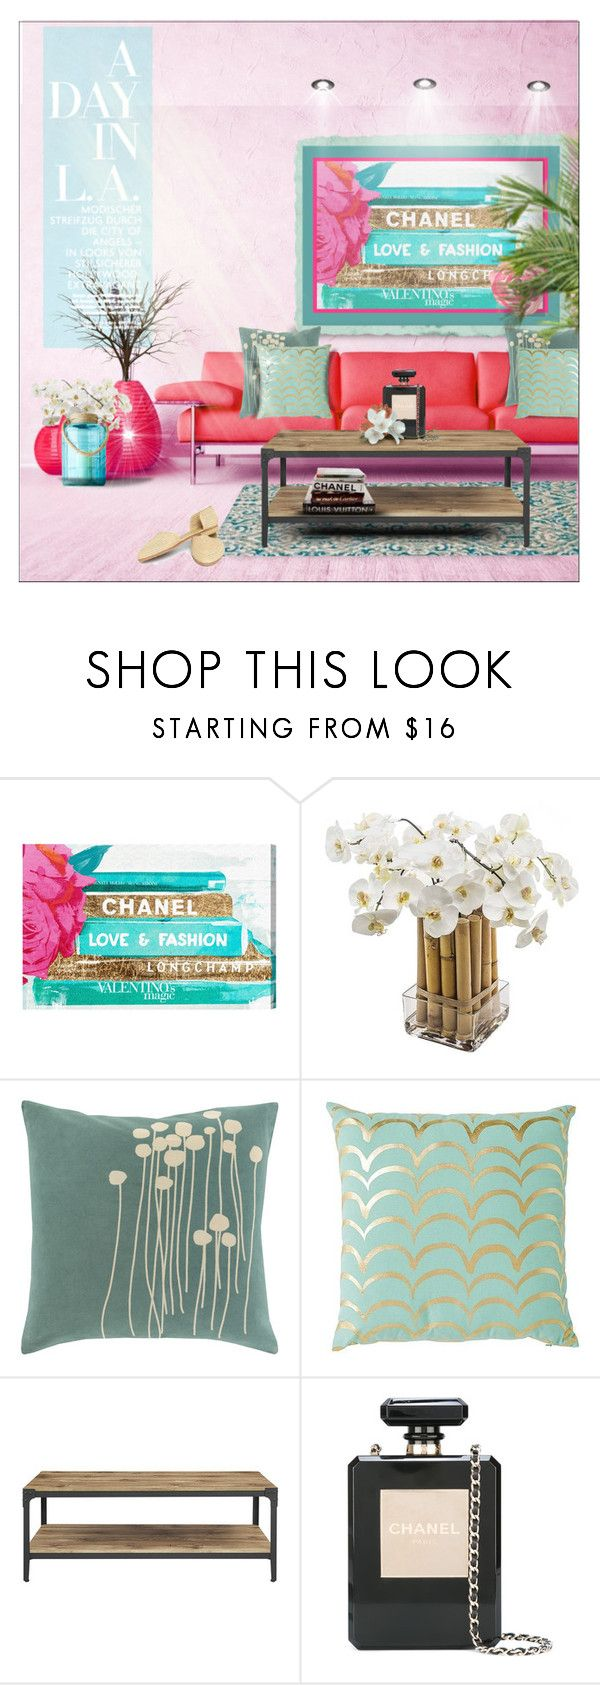 """""""#47-2017:)"""" by maison-de-forgeron ❤ liked on Polyvore featuring interior, interiors, interior design, home, home decor, interior decorating, WALL, Oliver Gal Artist Co., Sia and Lotta Jansdotter"""